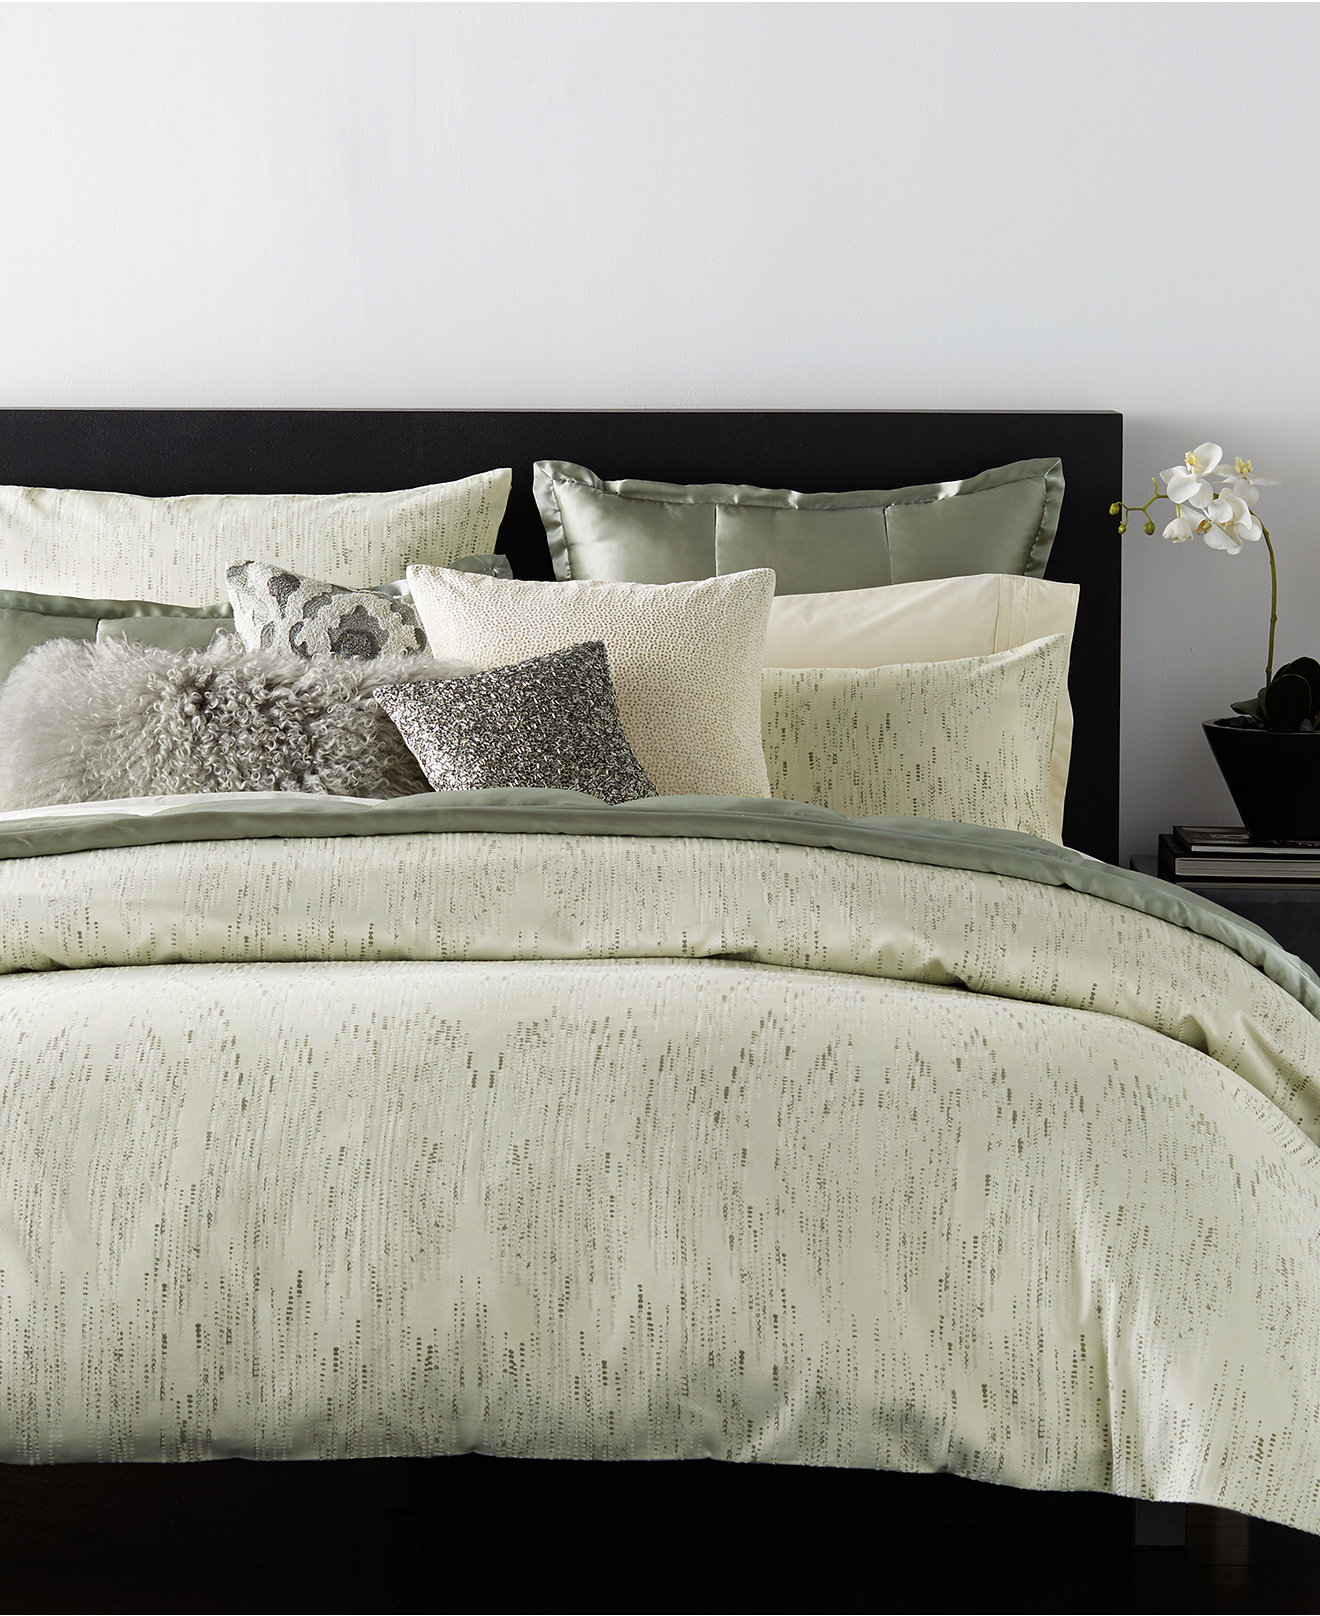 Chic donna karan bedding with Cushion and pillows also beautiful duvet cover and sidetable and luxury wall paint color